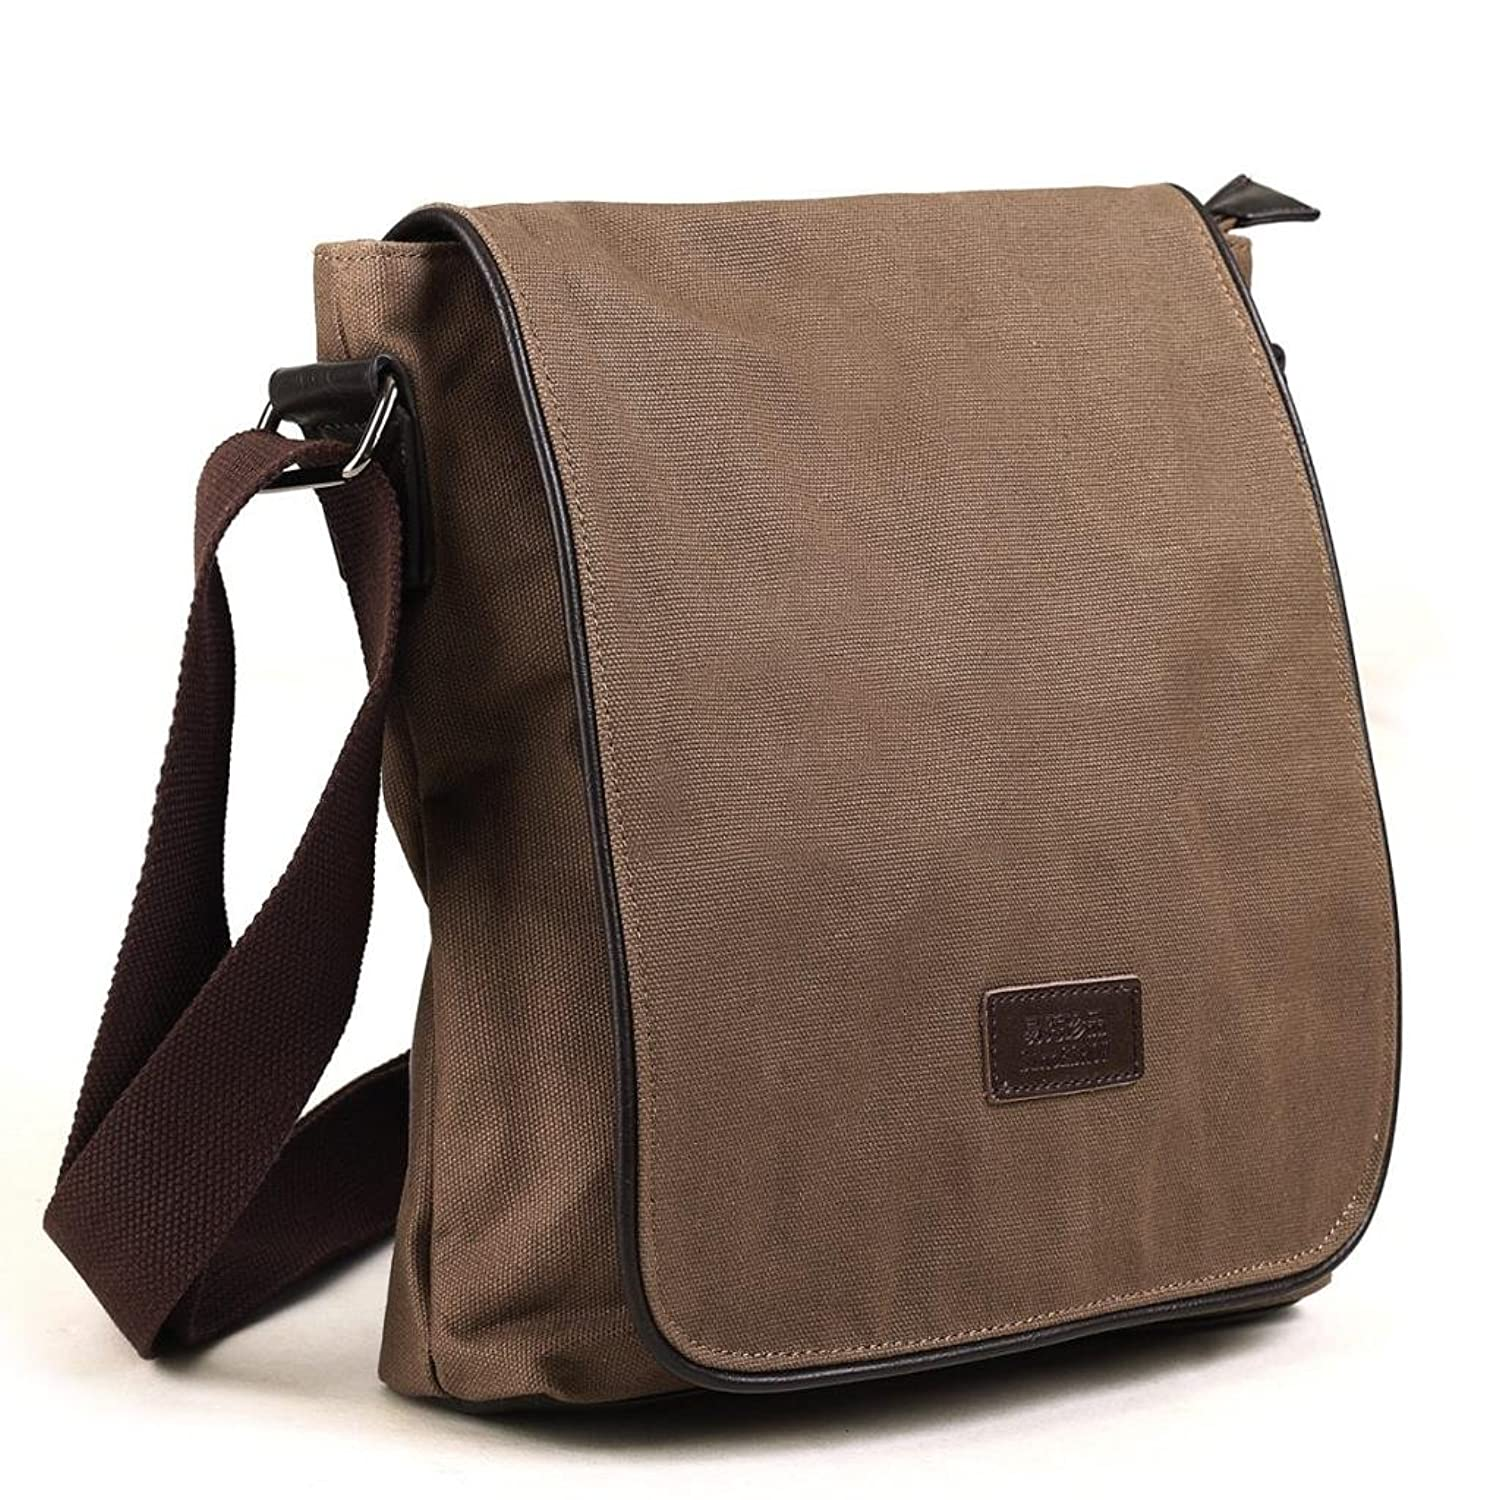 Eshow Men Shoulder Bag Canvas Small Satchel Bag ipad Crossbody for Mens Small Messenger for Work Casual Daily Travel School Classic Vintage Traveling Weekend